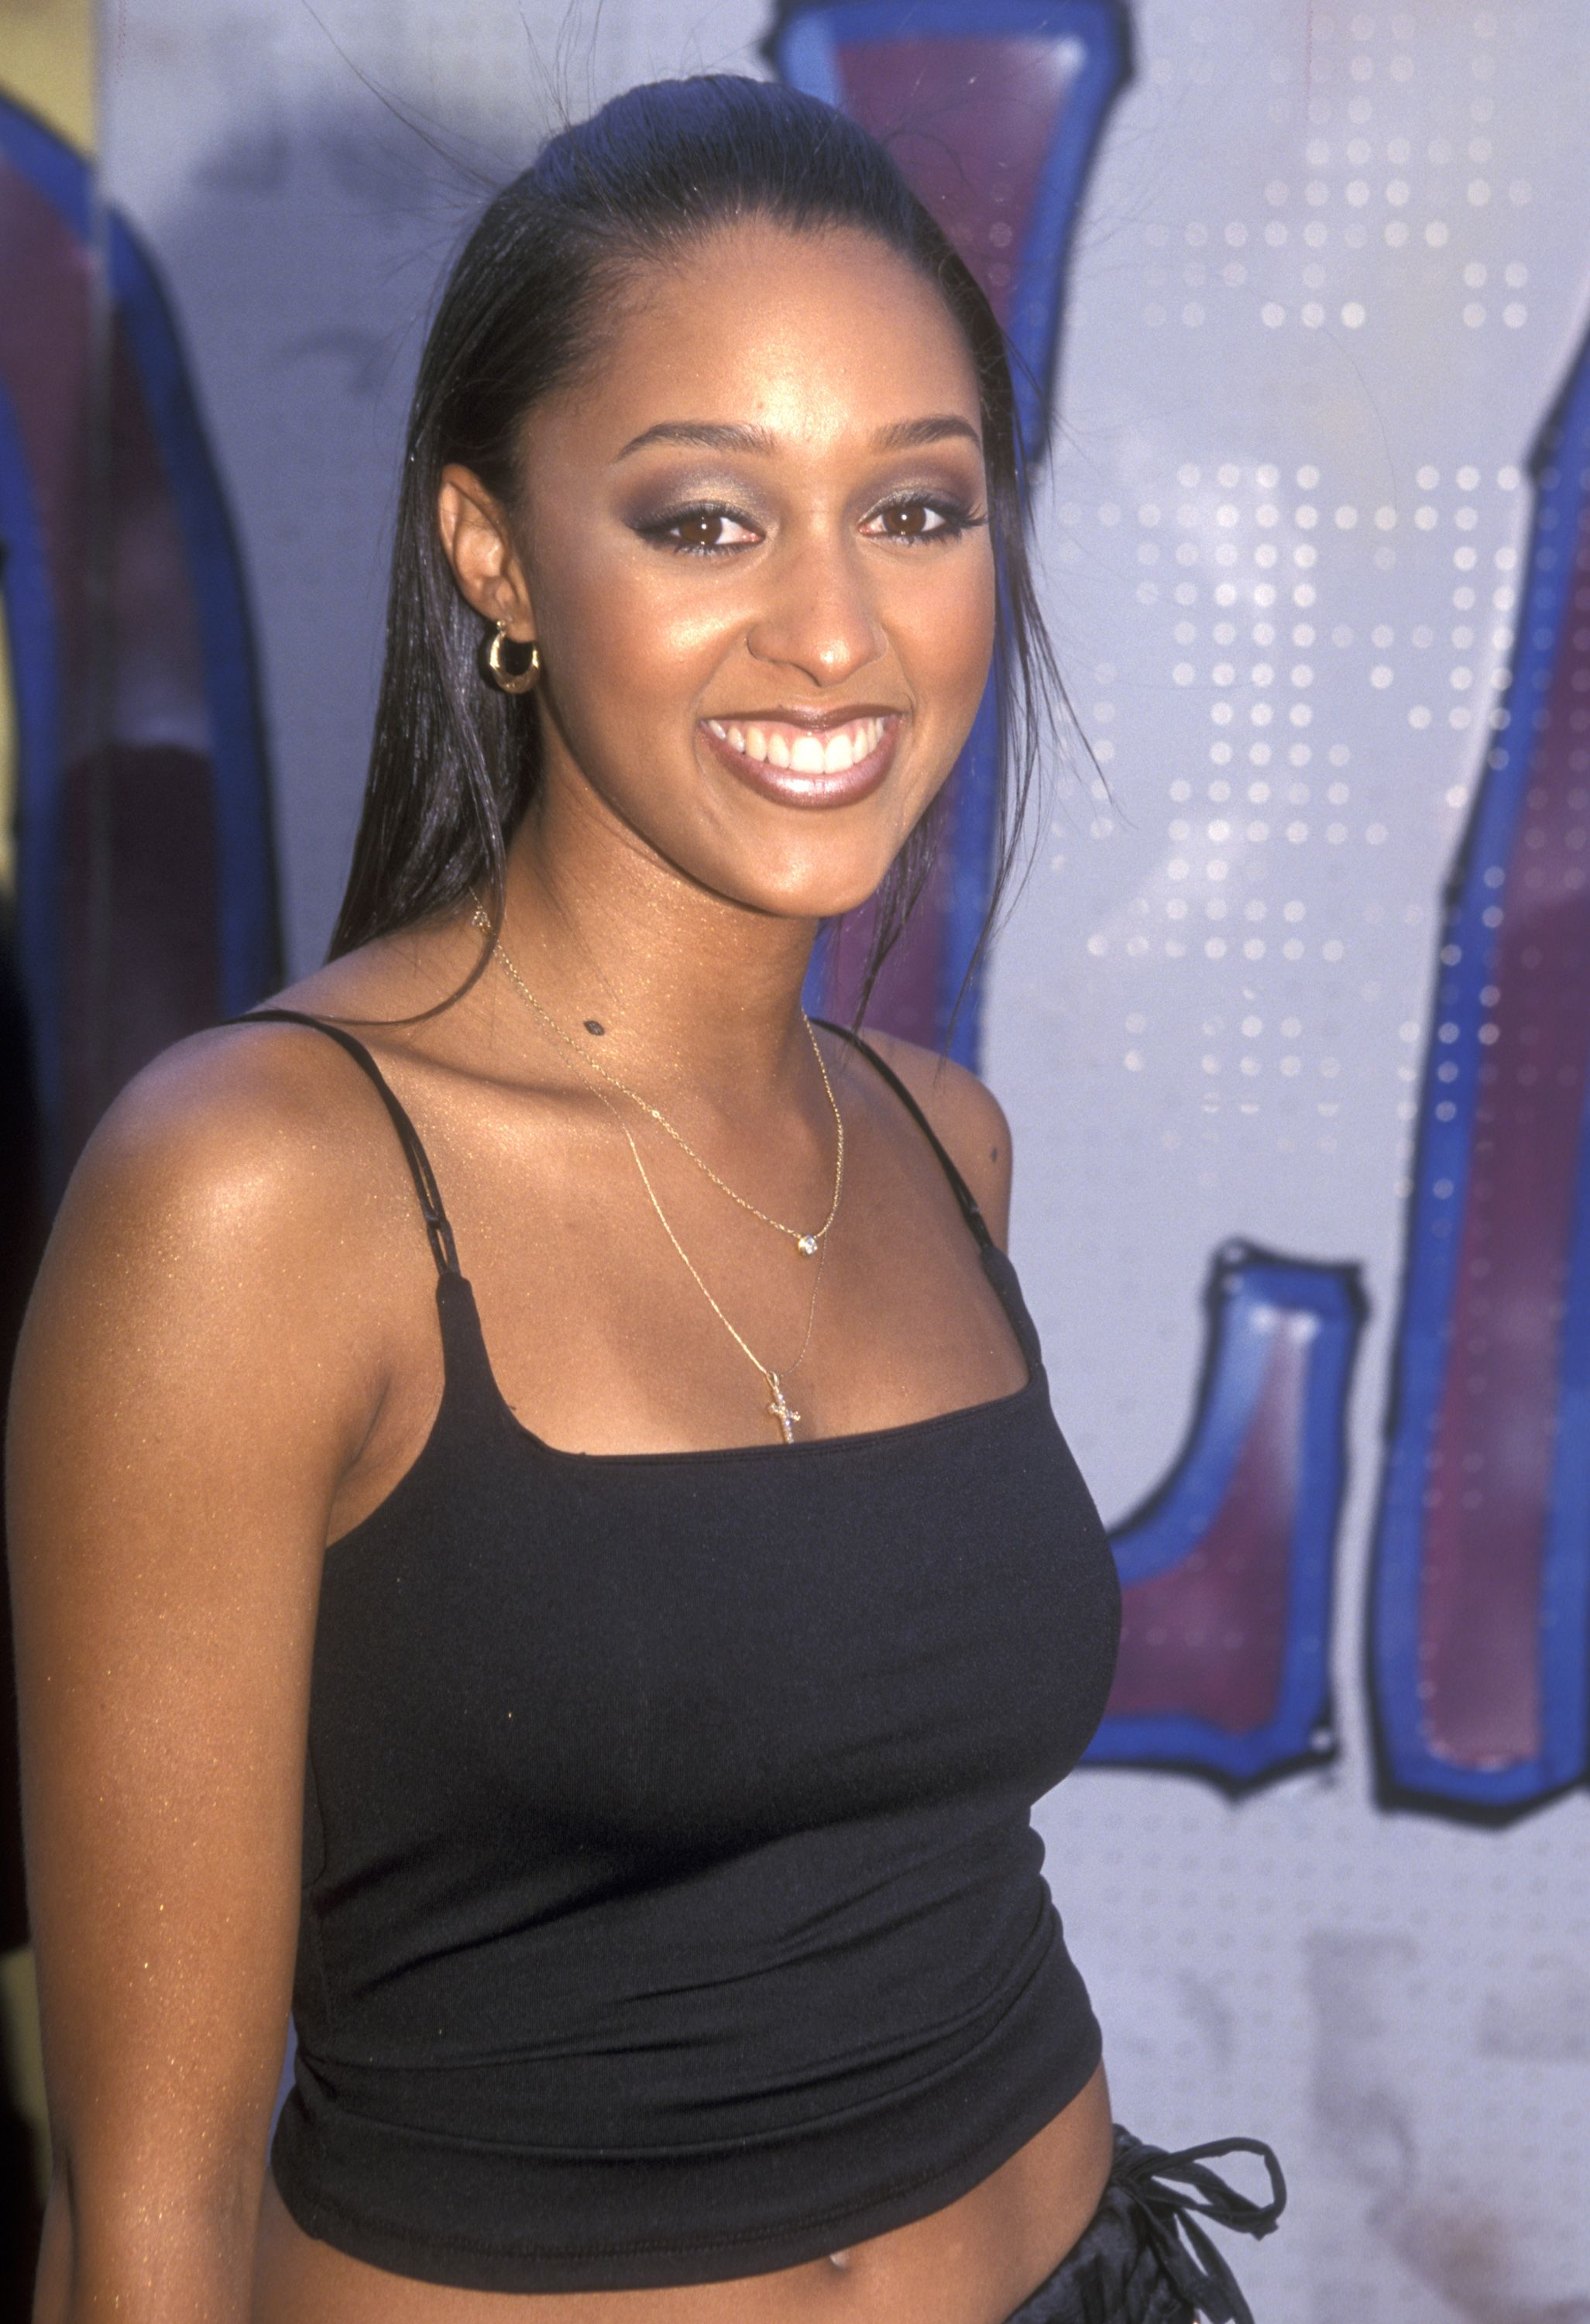 Tia Mowry at the Soul Train Lady of Soul Awards on September 3, 1999 in Santa Monica. | Photo: Getty Images